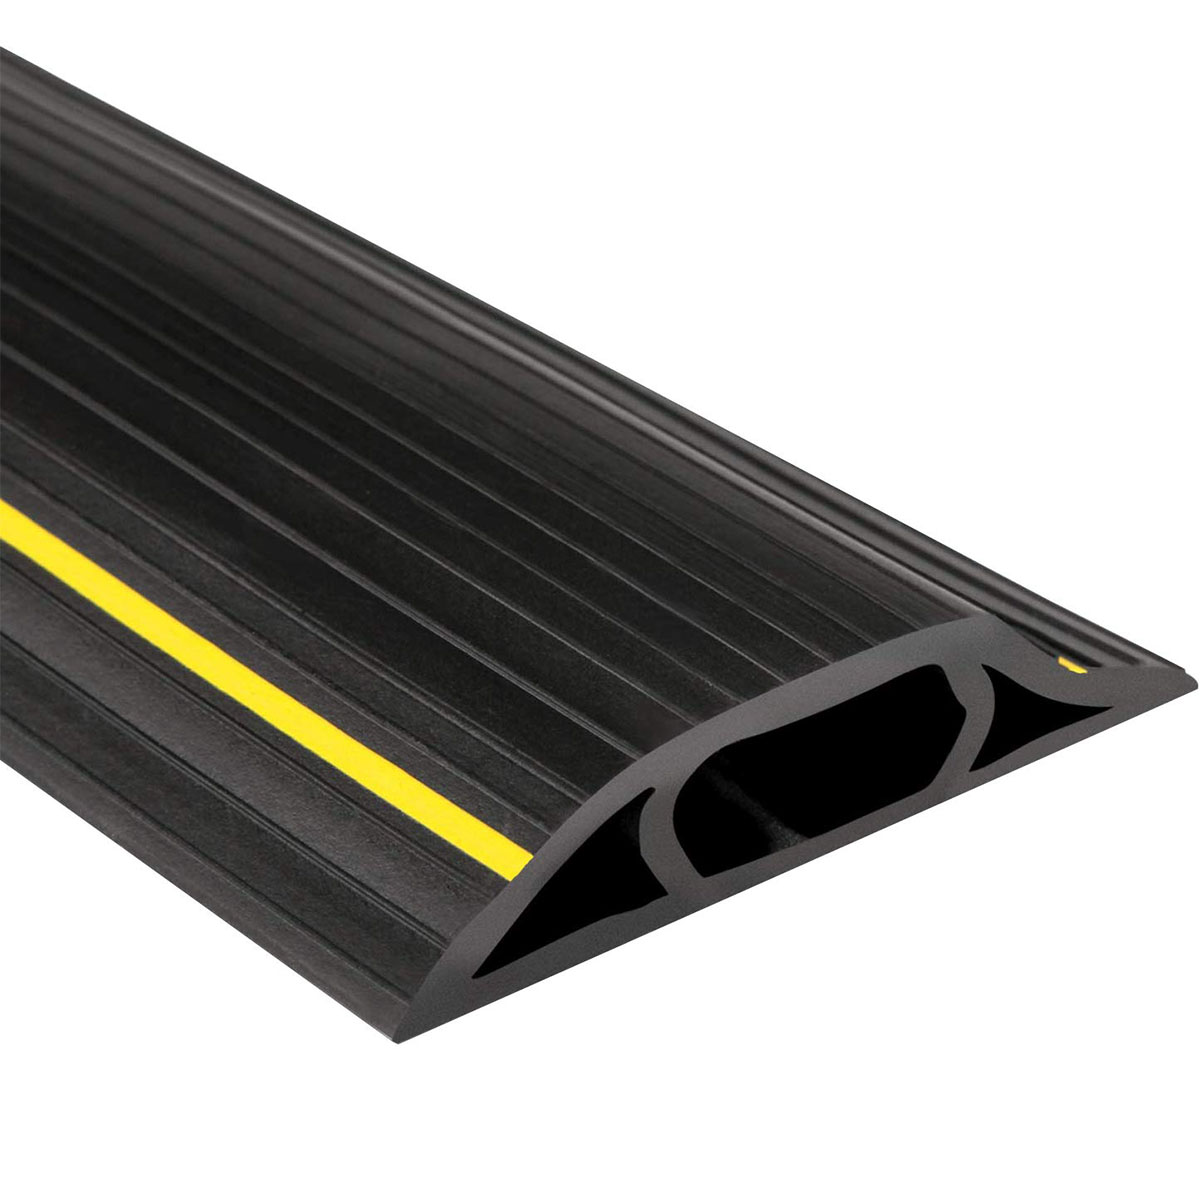 Electriduct High Visibility Plastic